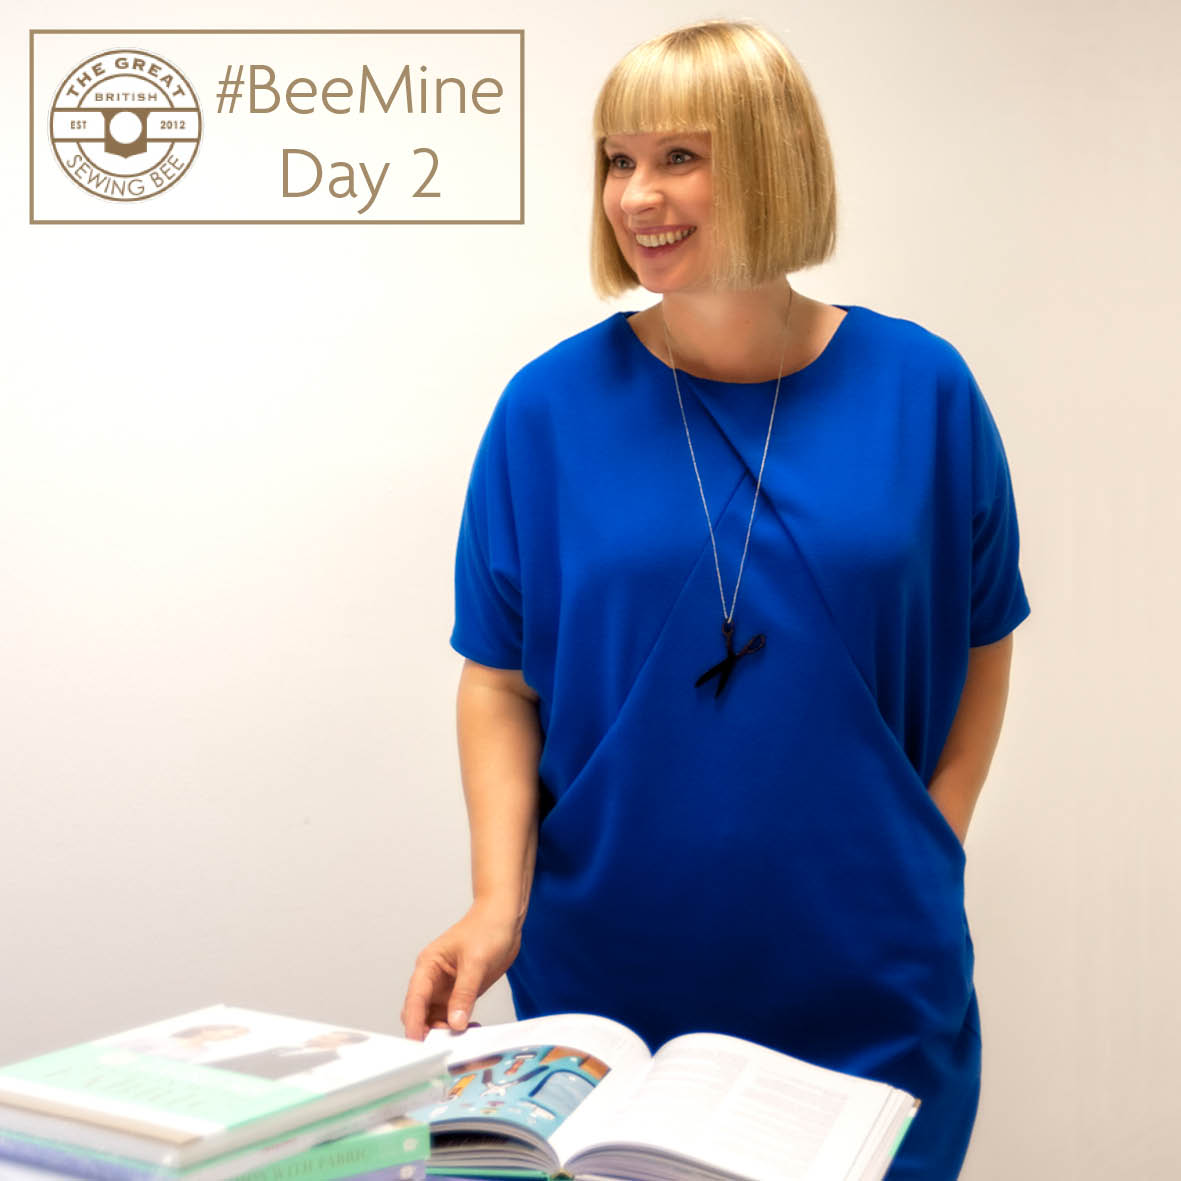 Day 2 #BeeMine- my 30 day blog challenge